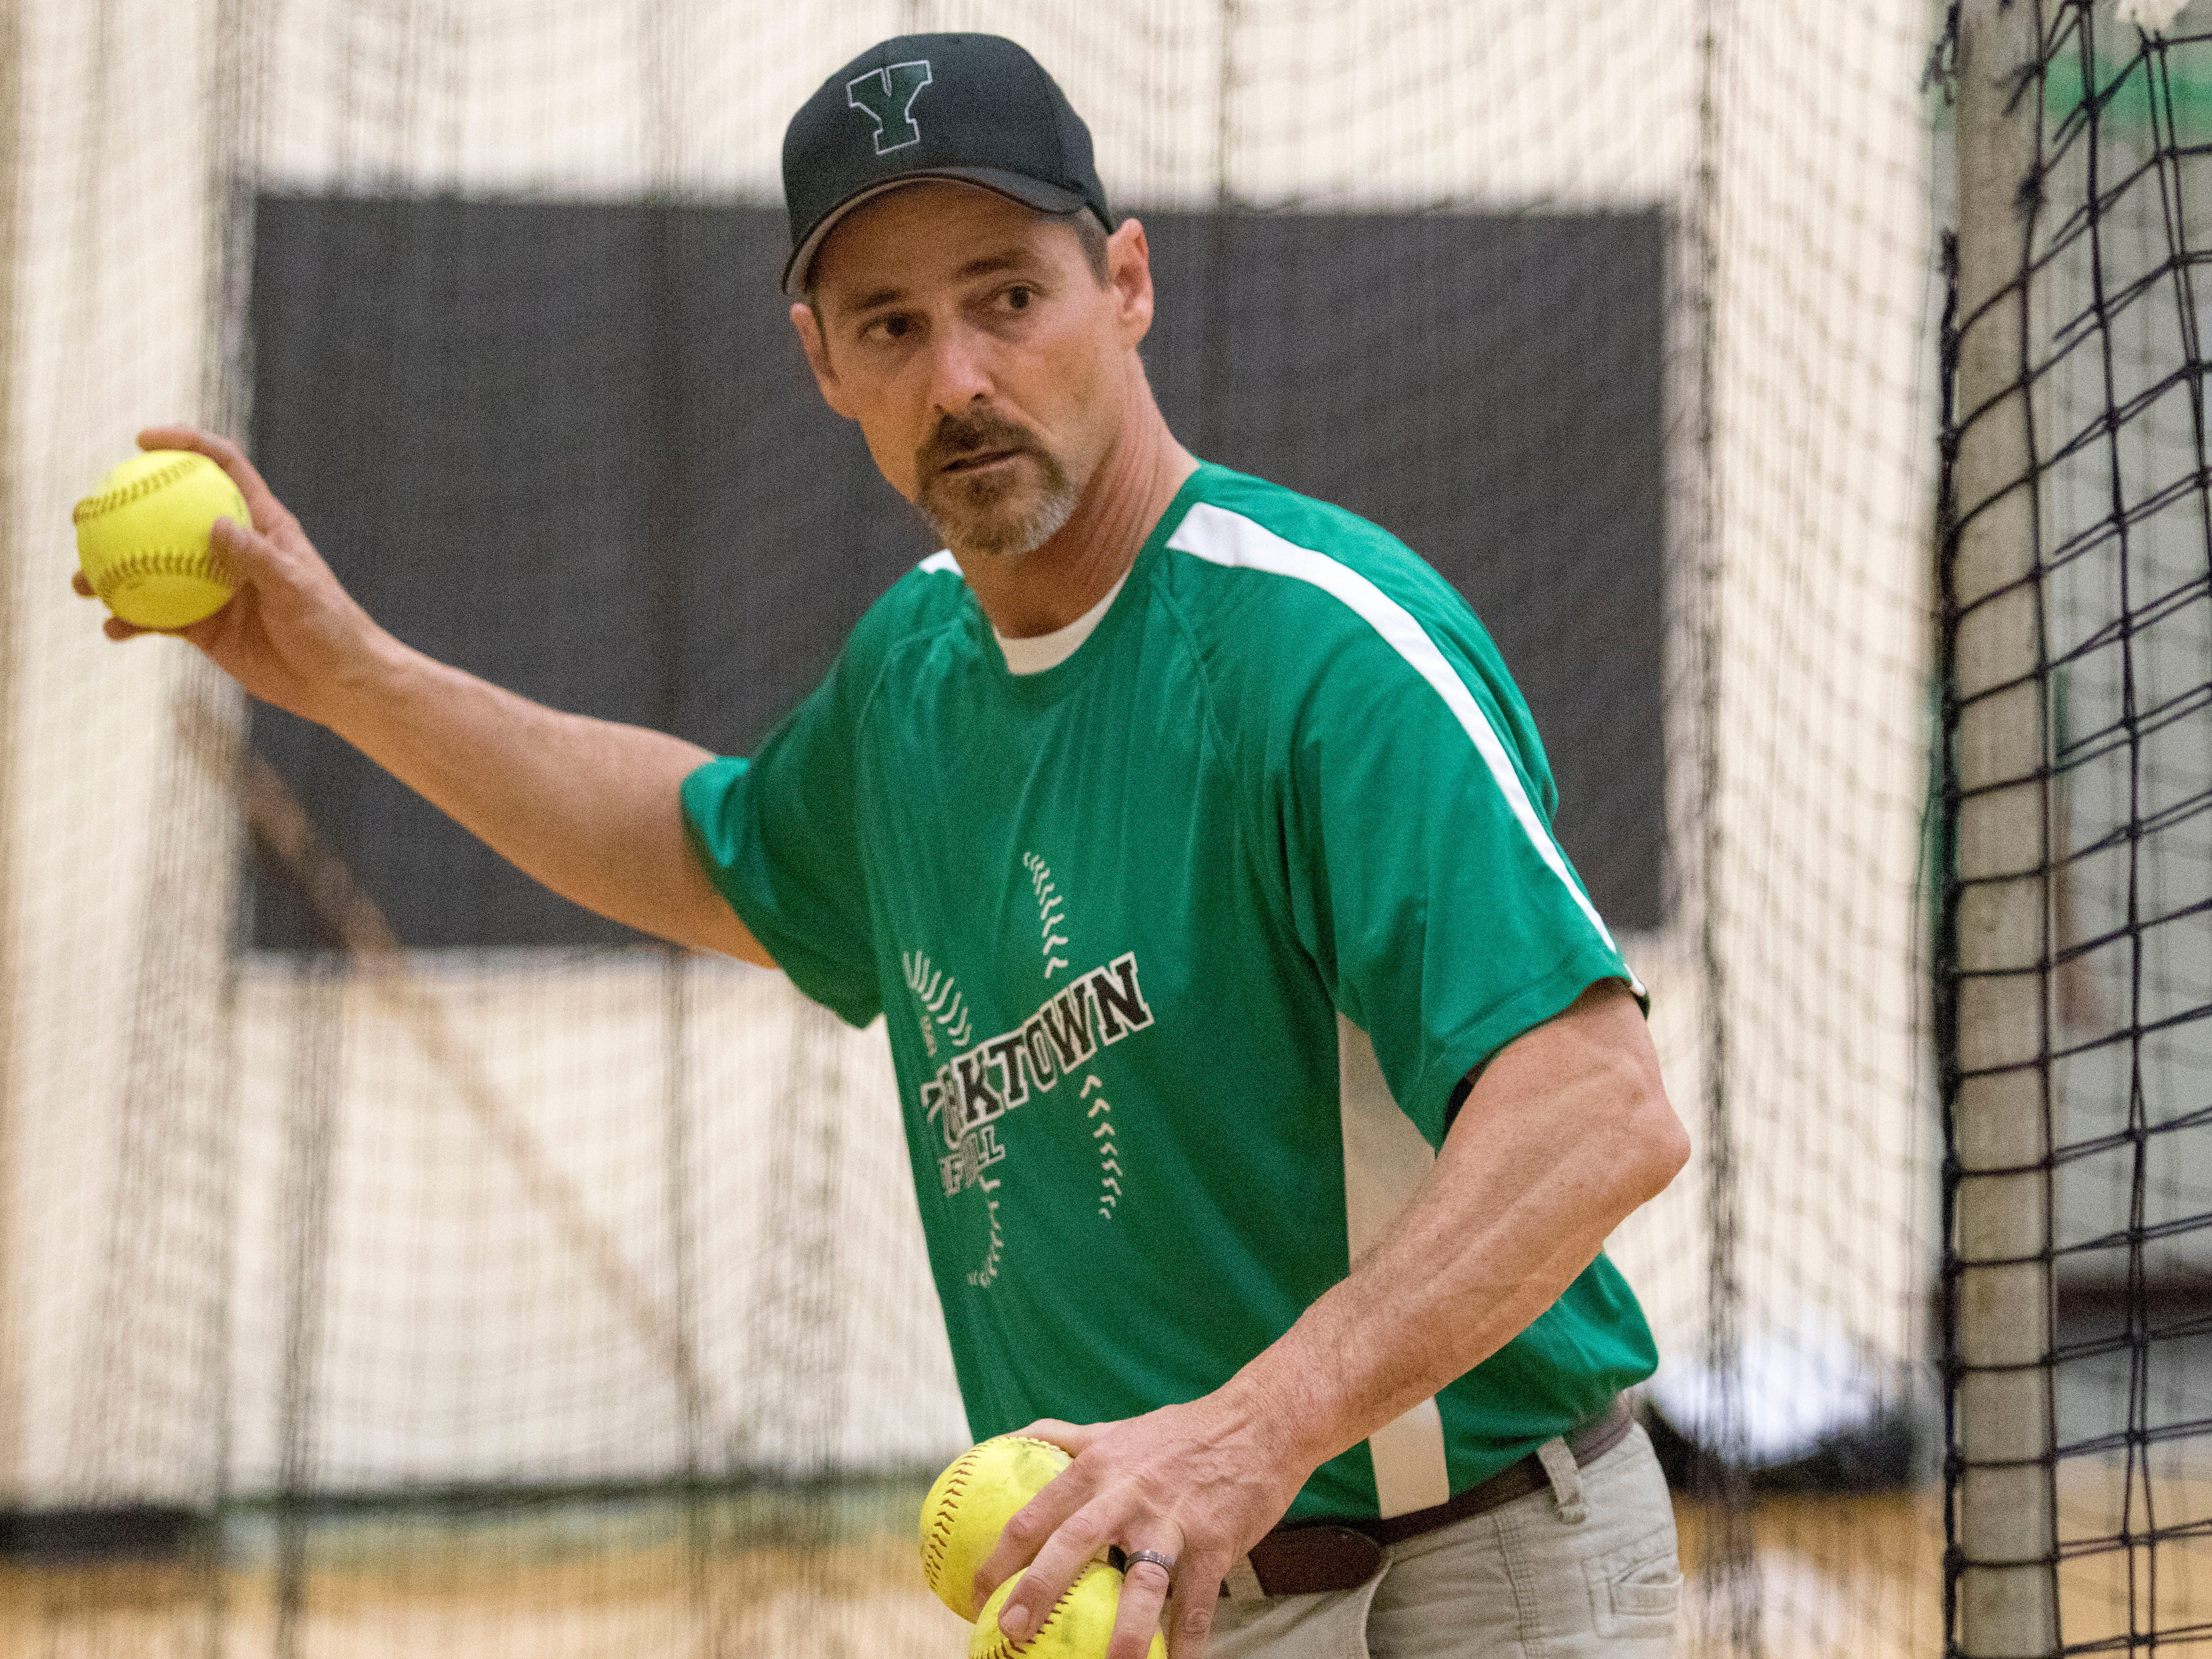 Coach Jeff Berger works with members of the Yorktown softball team at practice on Thursday. Berger is new to the team, but coached at Cowan in previous seasons.